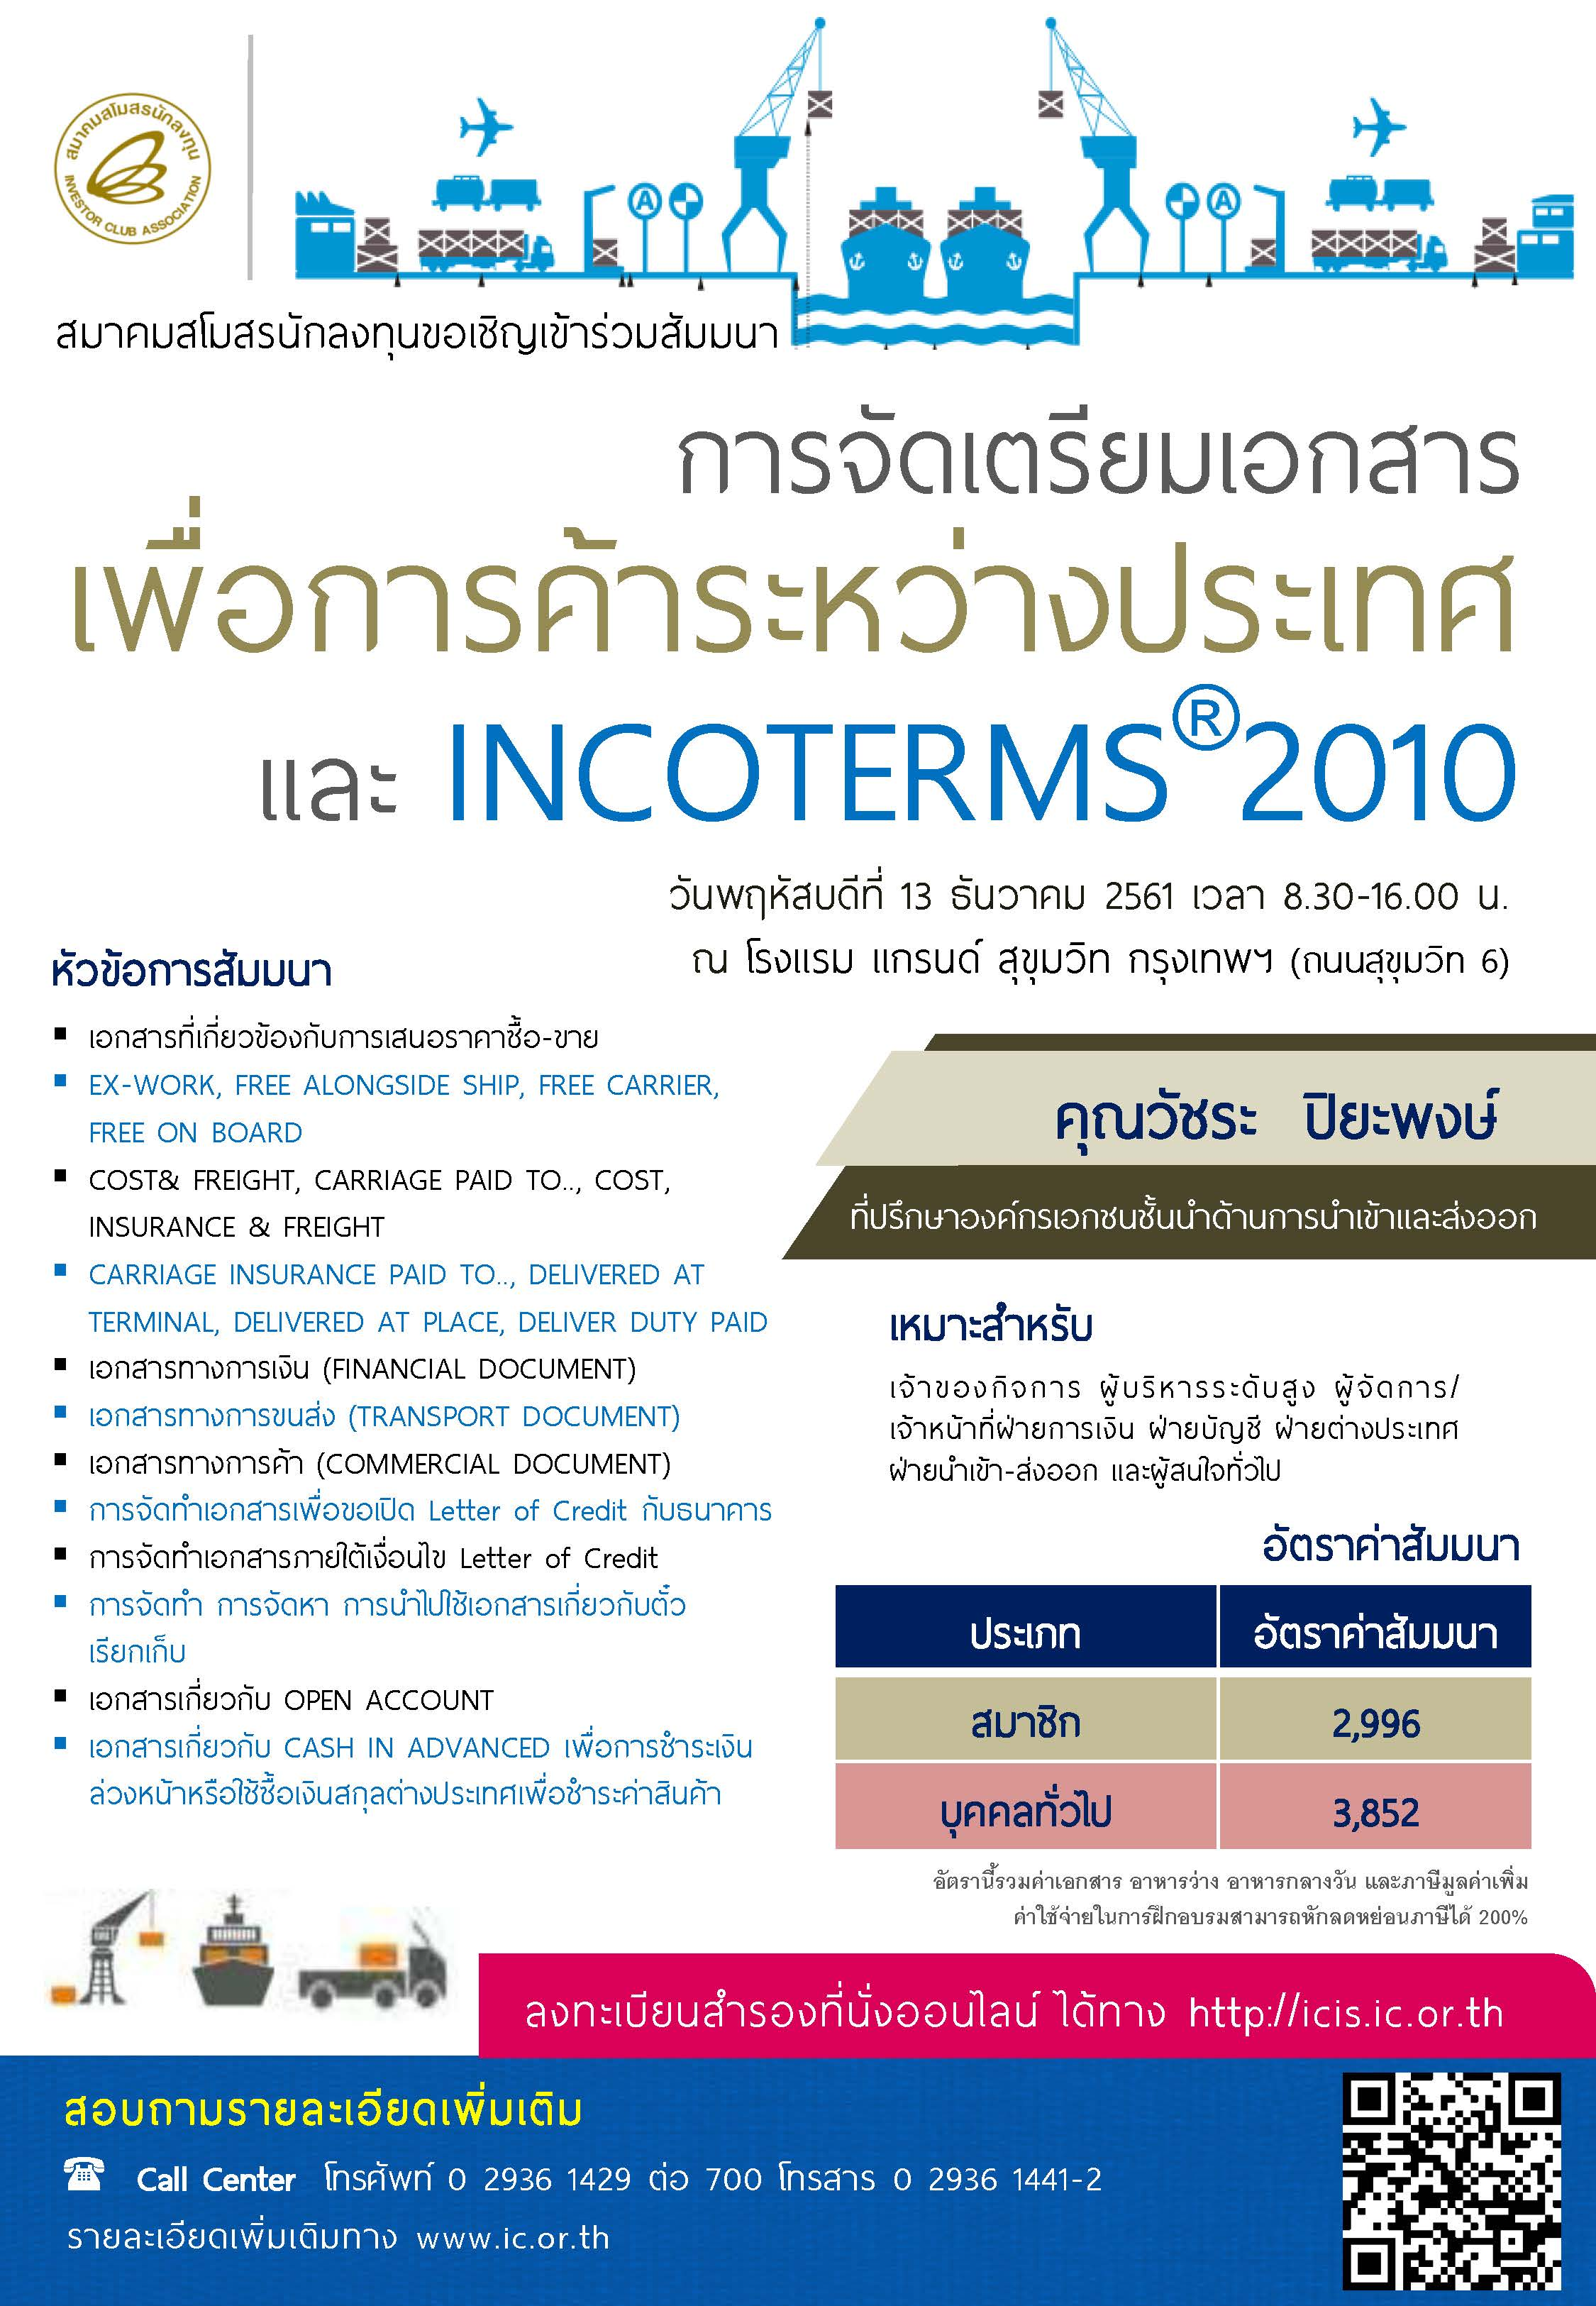 Incoterms2010 131261